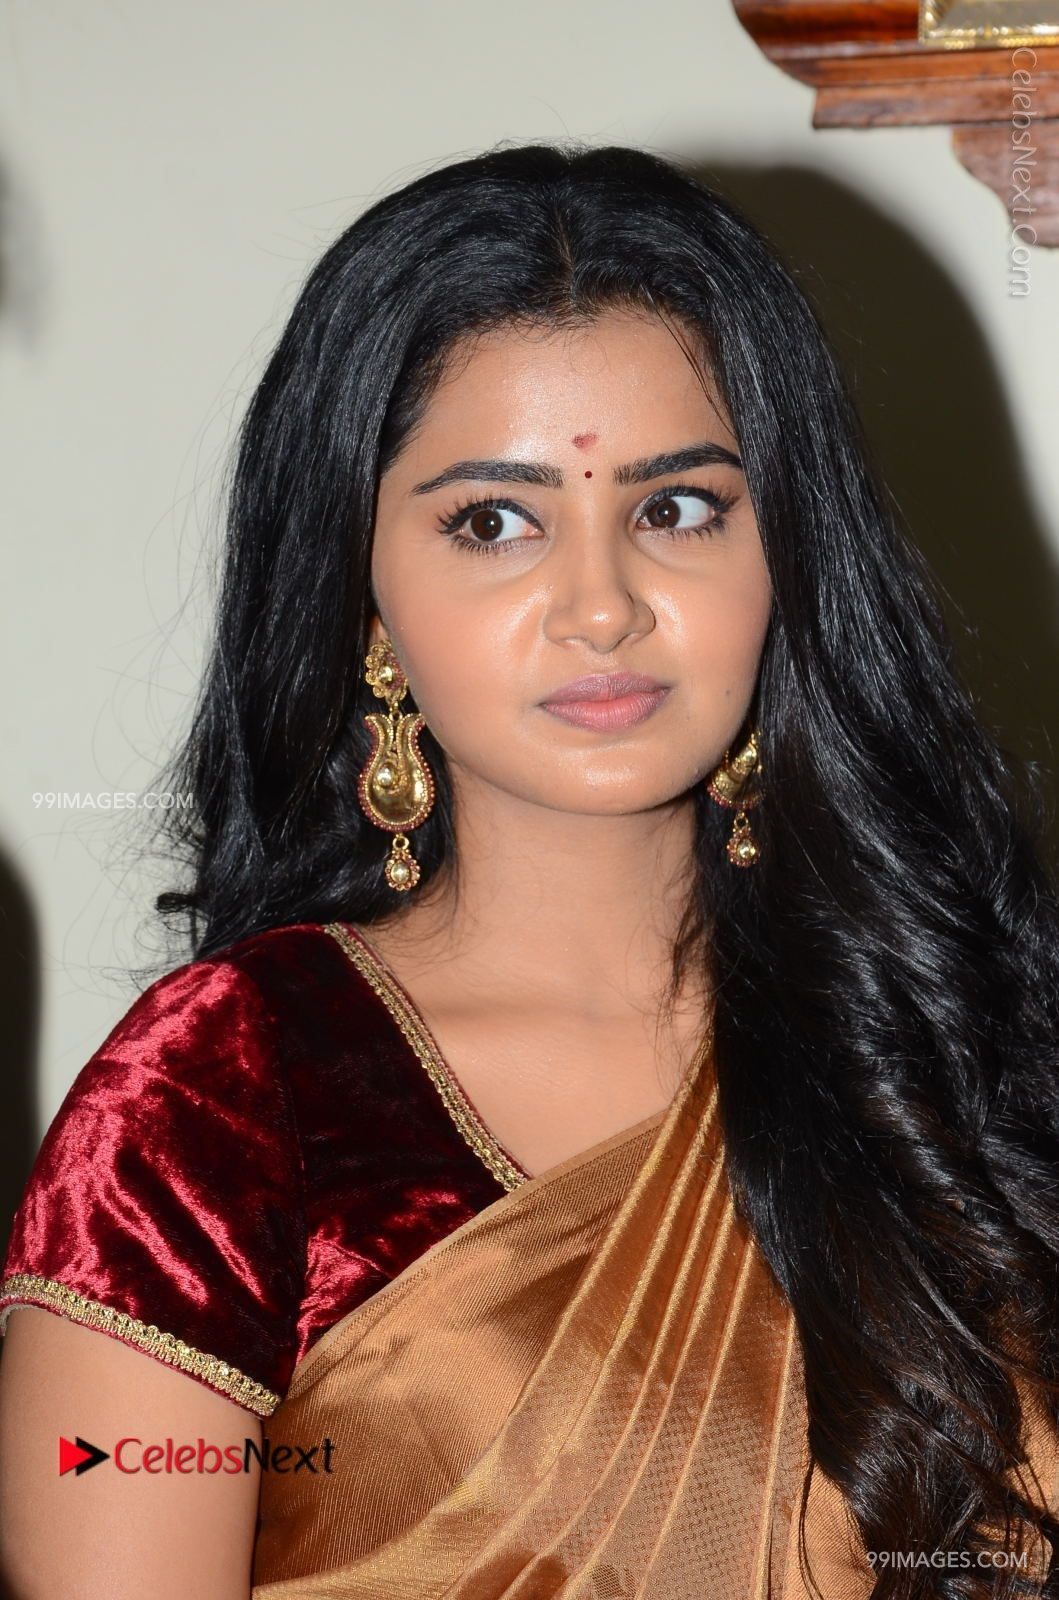 Anupama Parameswaran HD Wallpapers (Desktop Background / Android / iPhone) (1080p, 4k) (82420) - Anupama Parameswaran